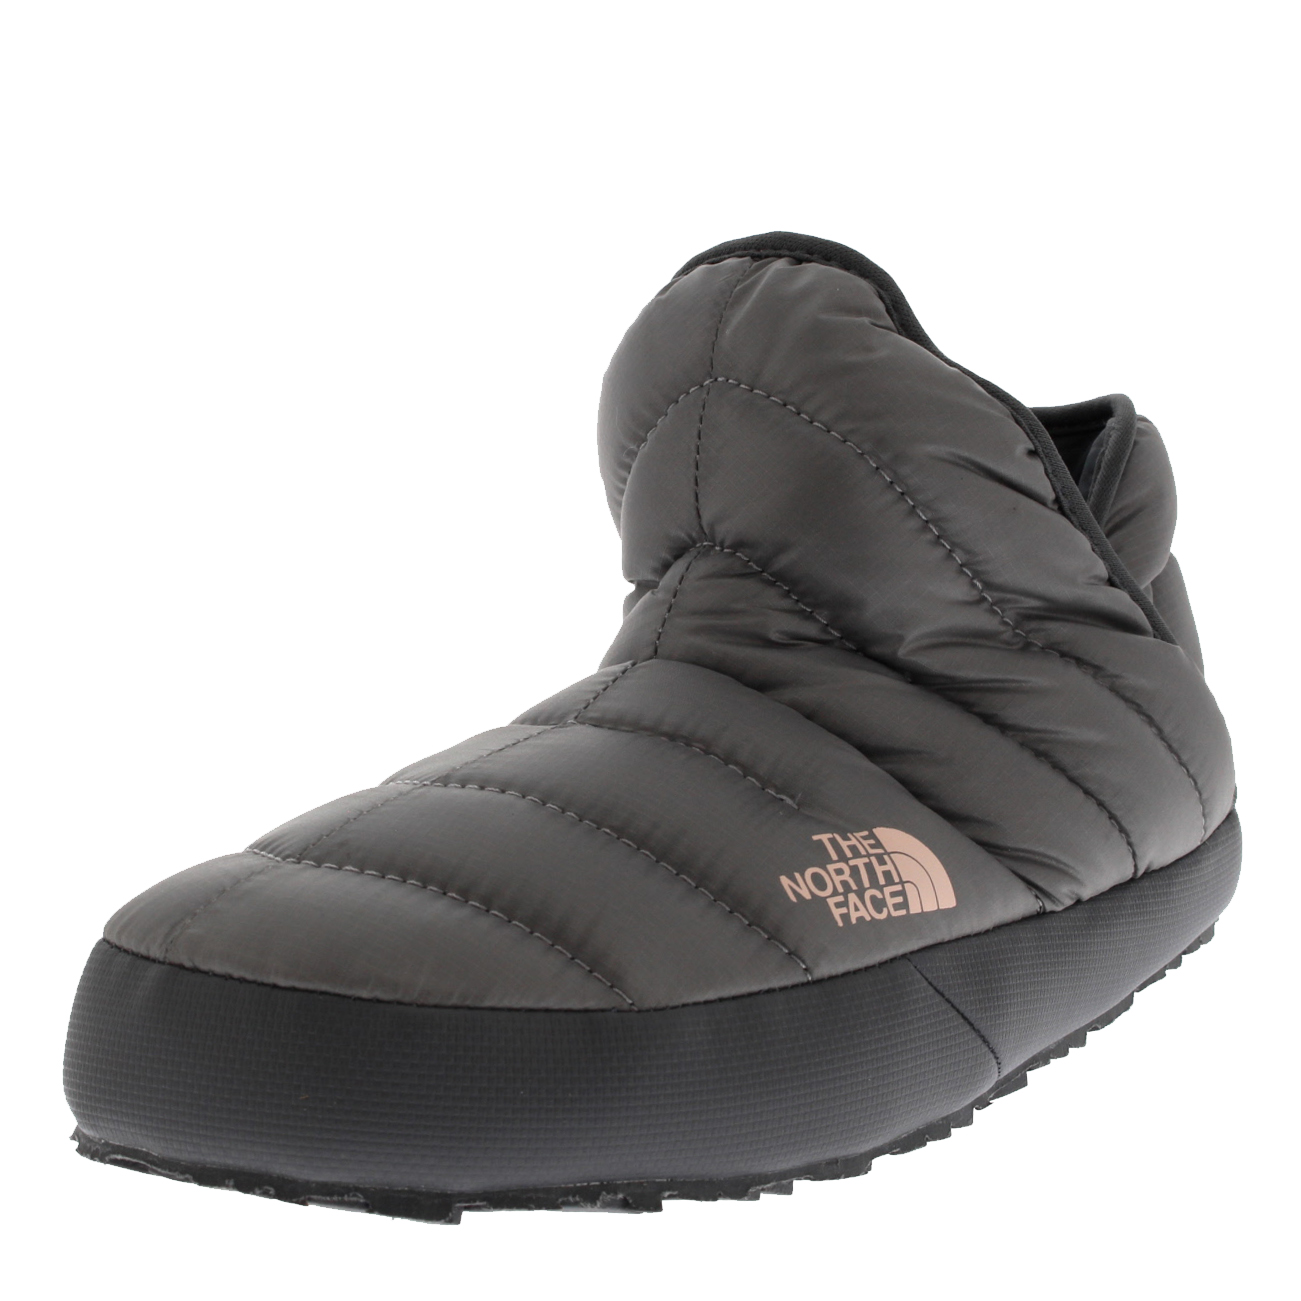 The North Face Thermoball Traction Bootie Boot